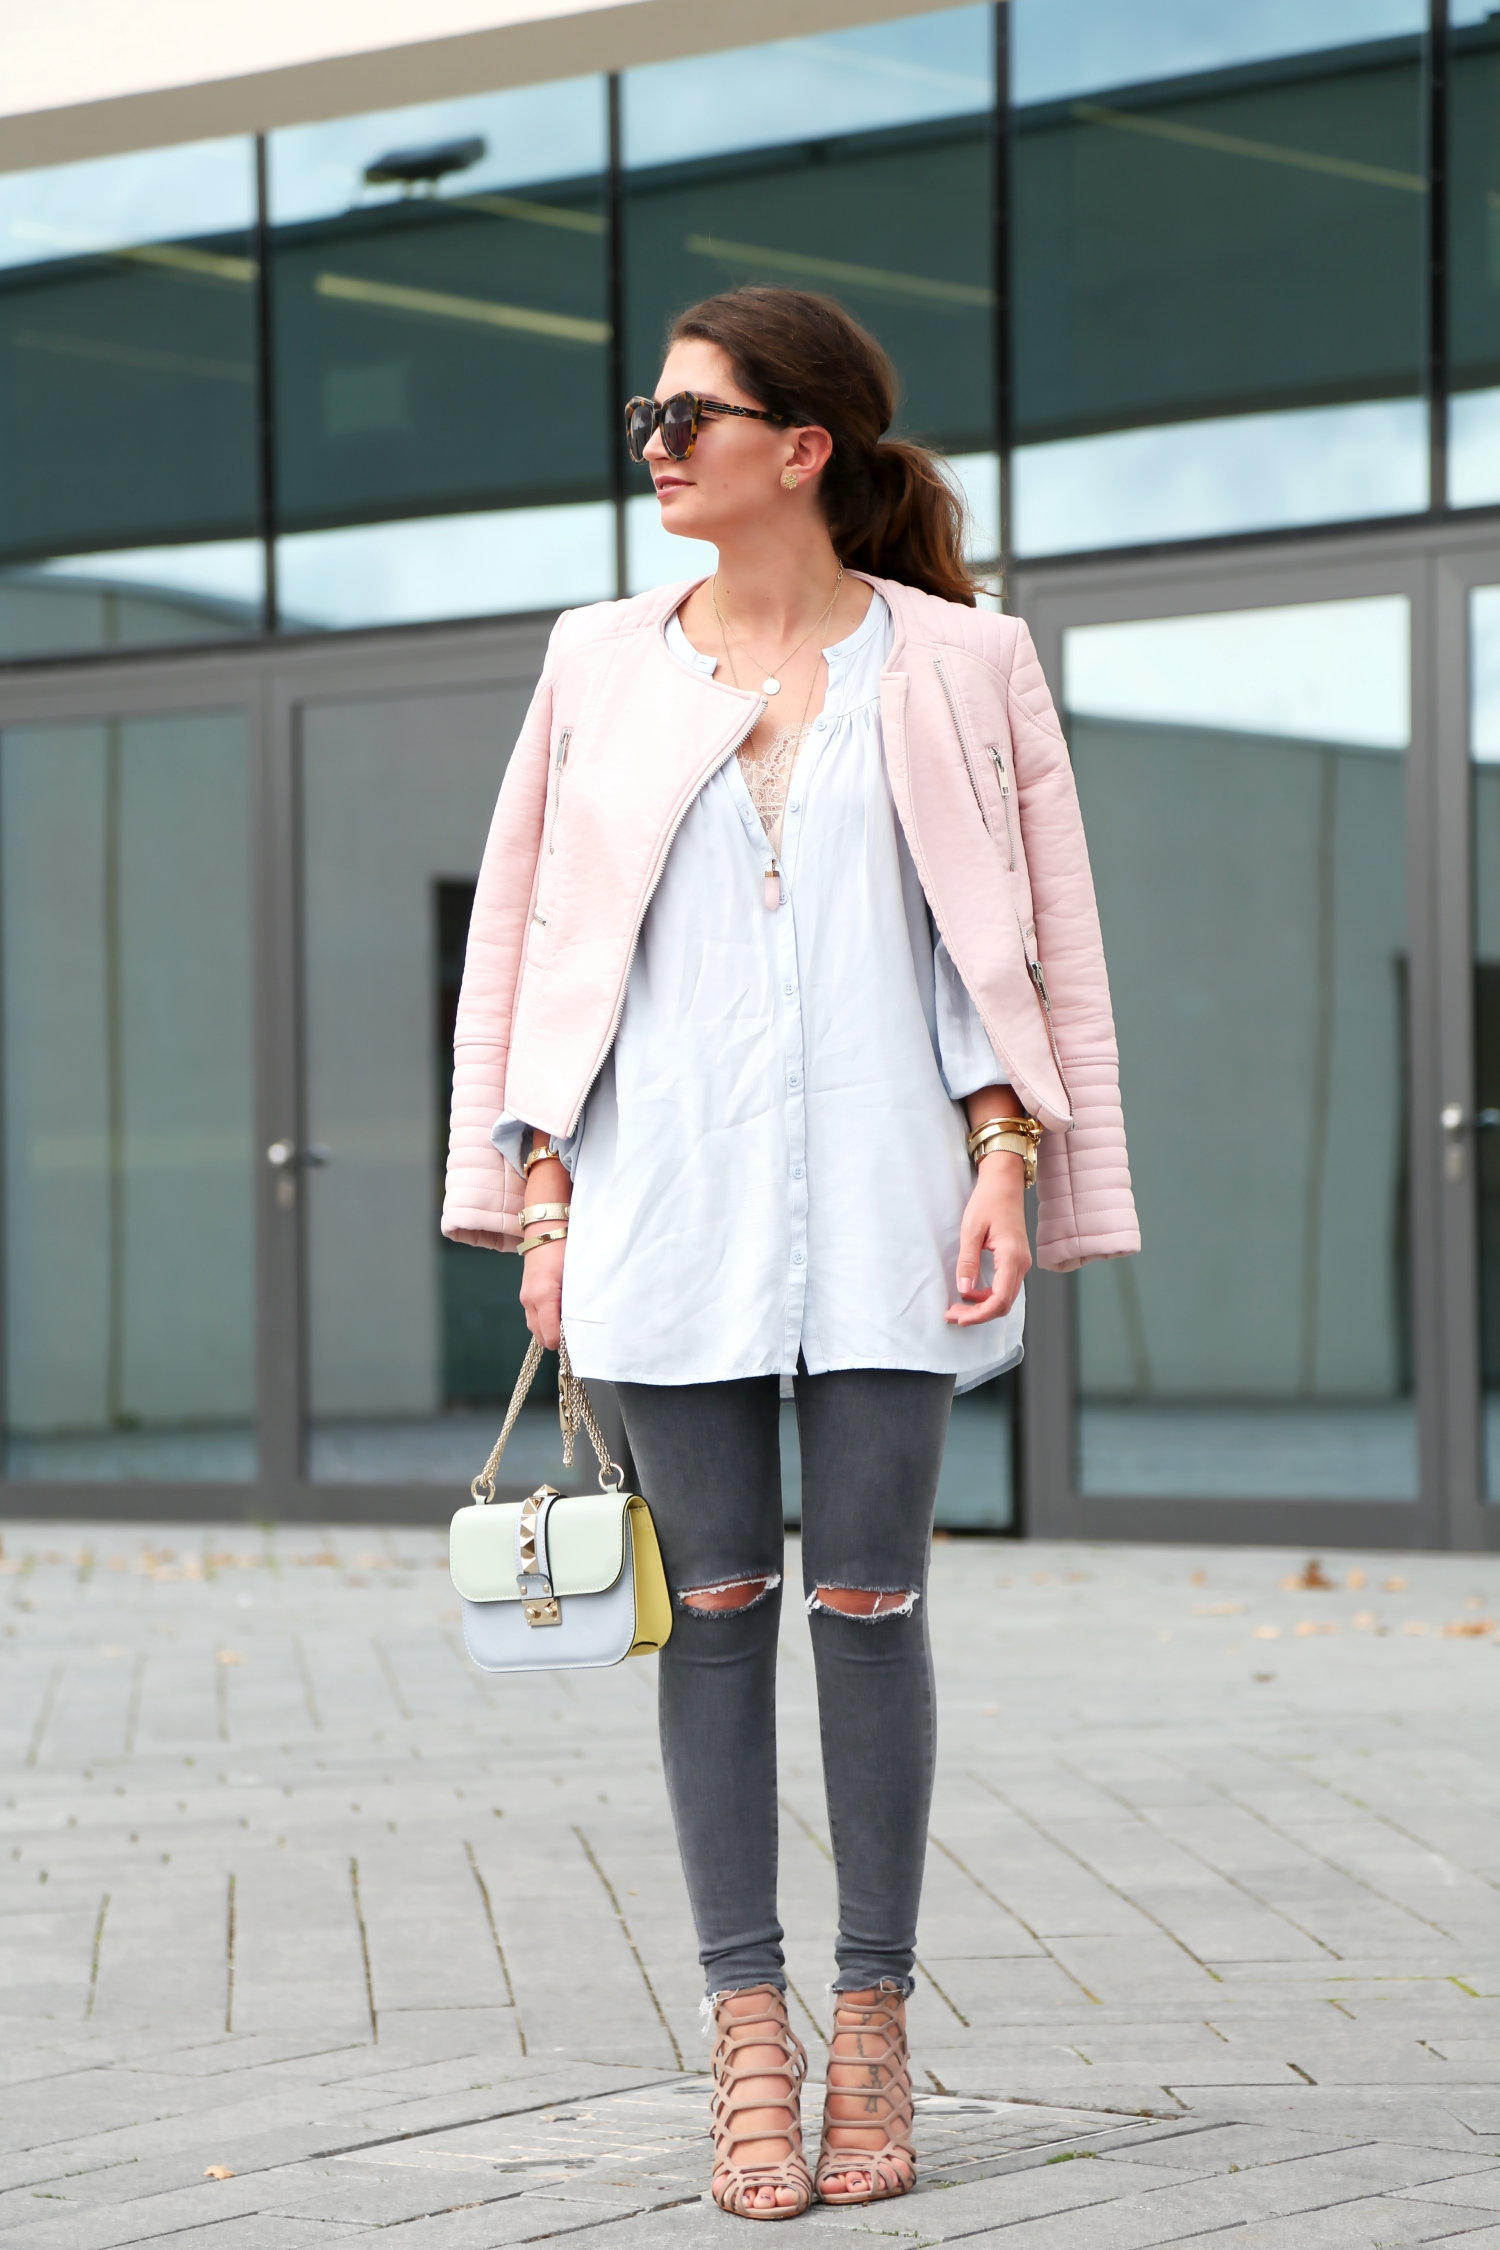 outfit-fashionhippieloves-spring-look-pink-leather-jacket-pastels-schutz-sandals